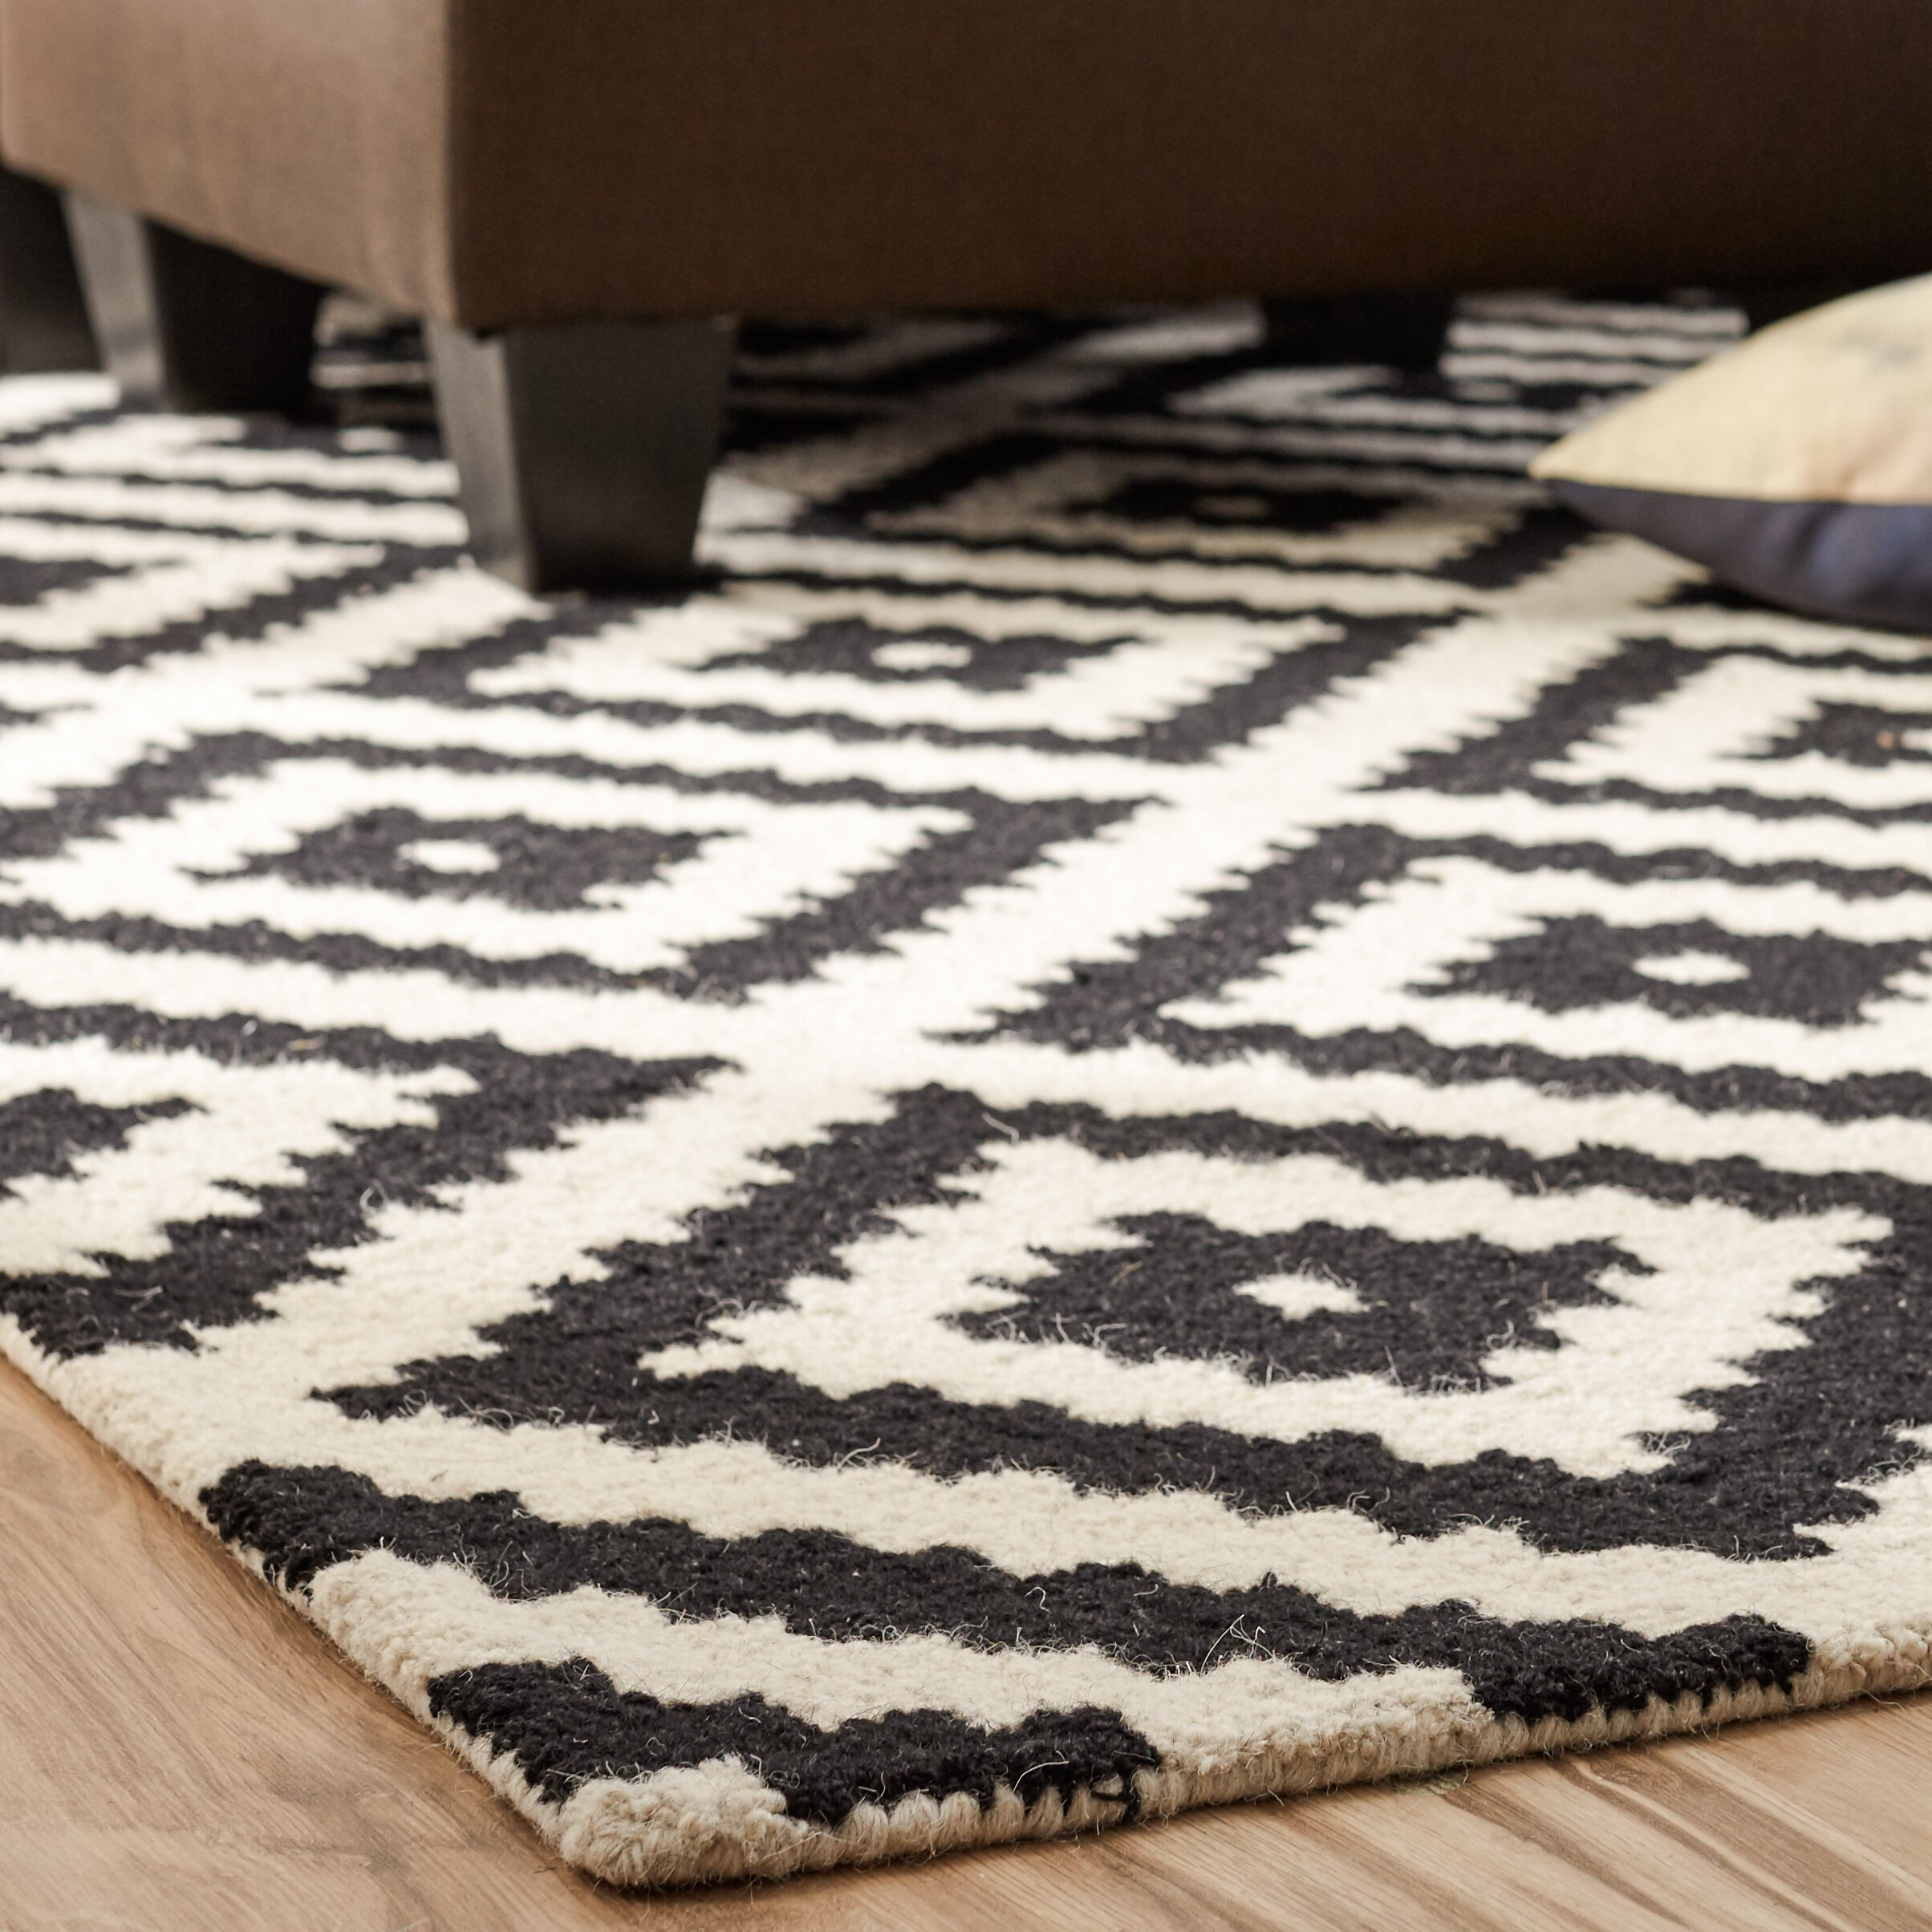 Dog Eating Wool Rug: Mercury Row Obadiah Hand-Tufted Black/Cream Area Rug